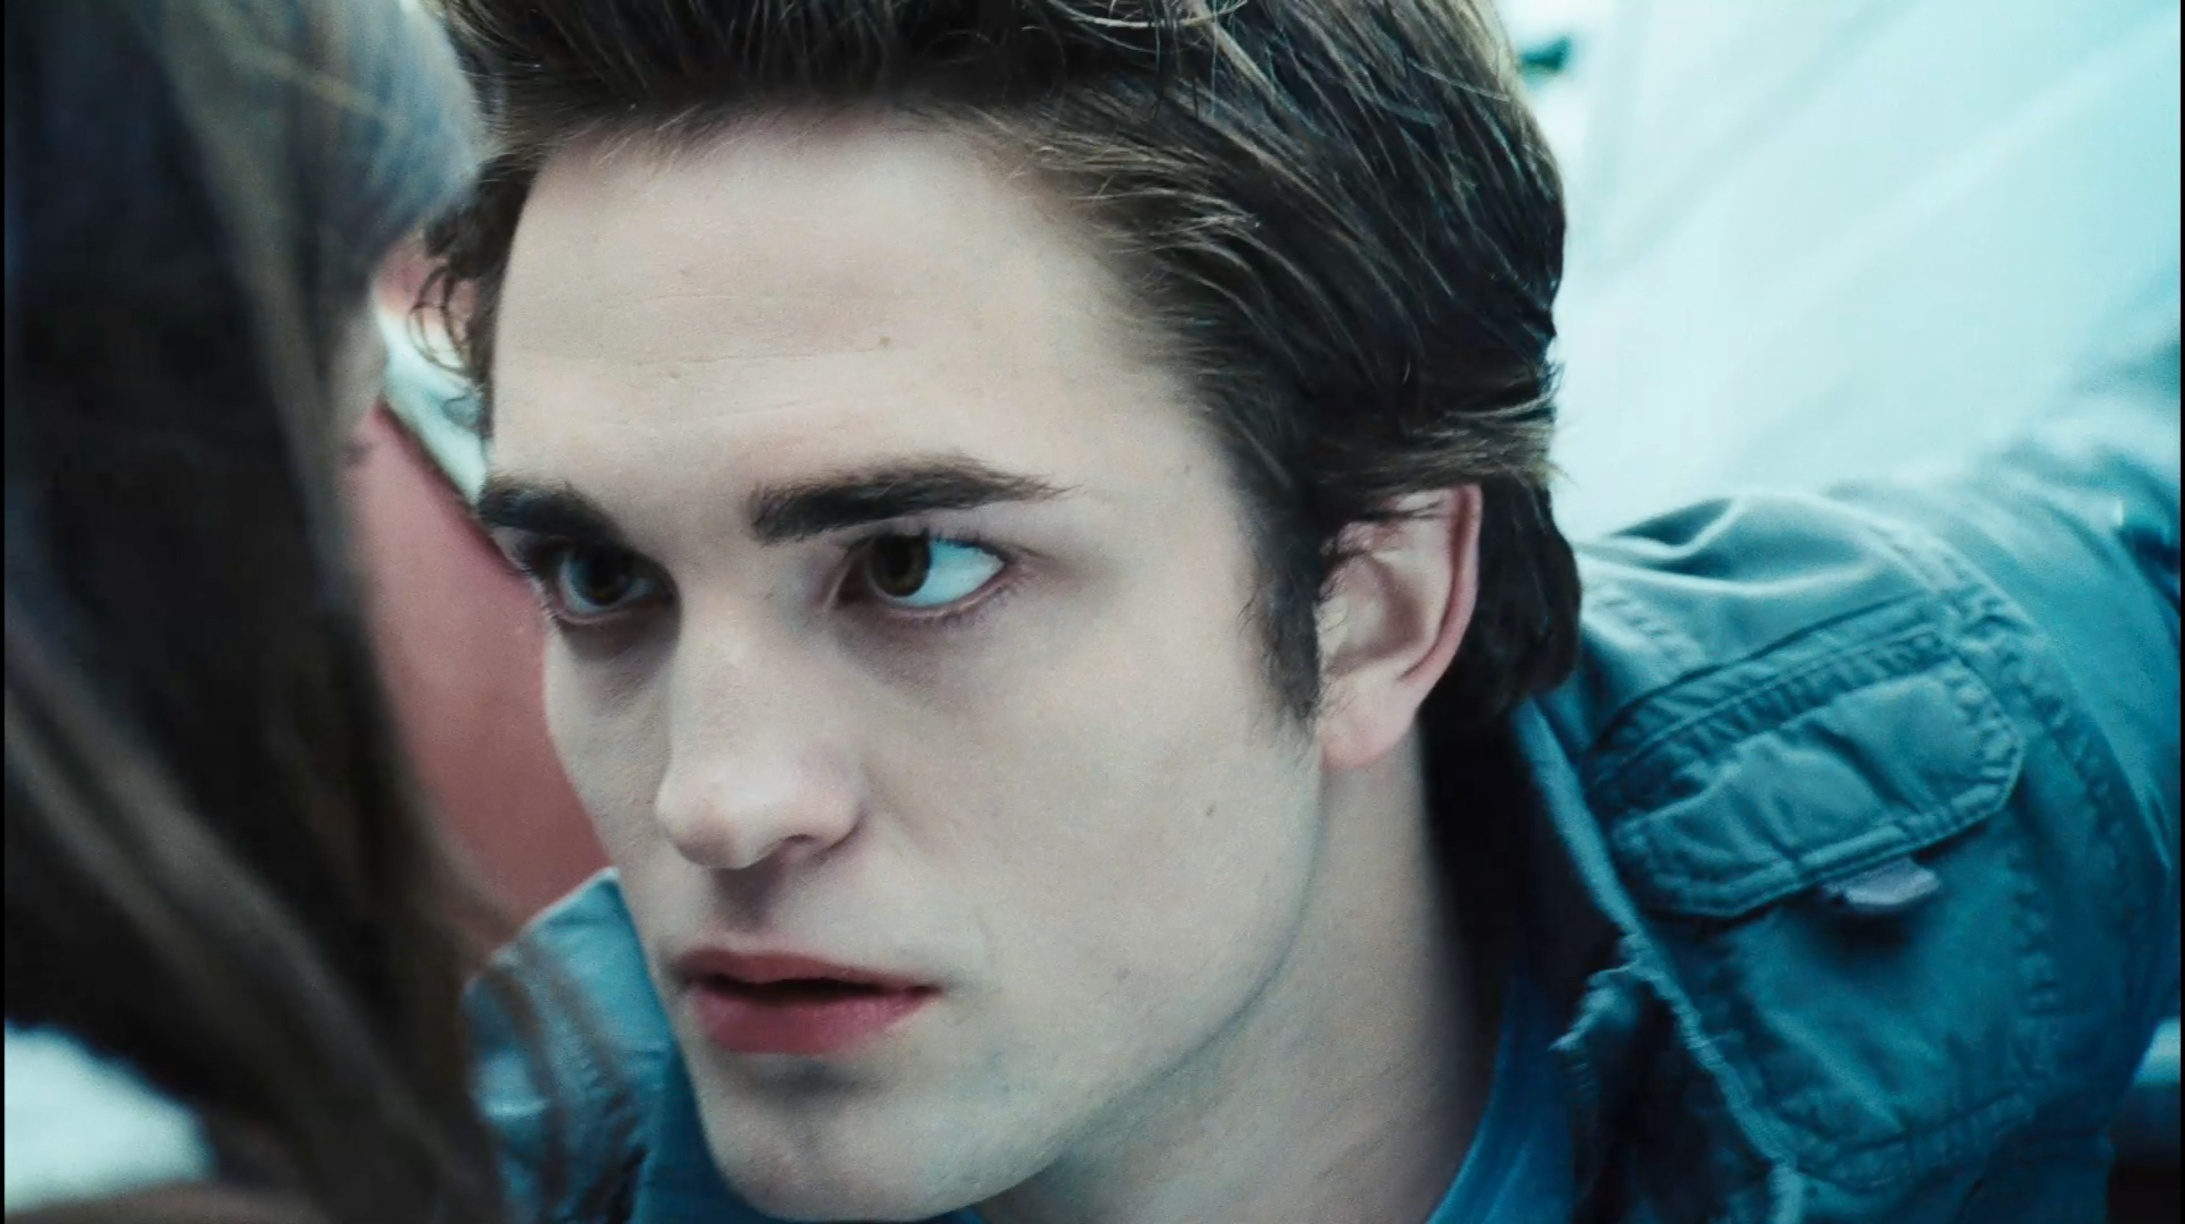 Edward and bella images bella edward twilight trailer 3 hq Twilight edward photos